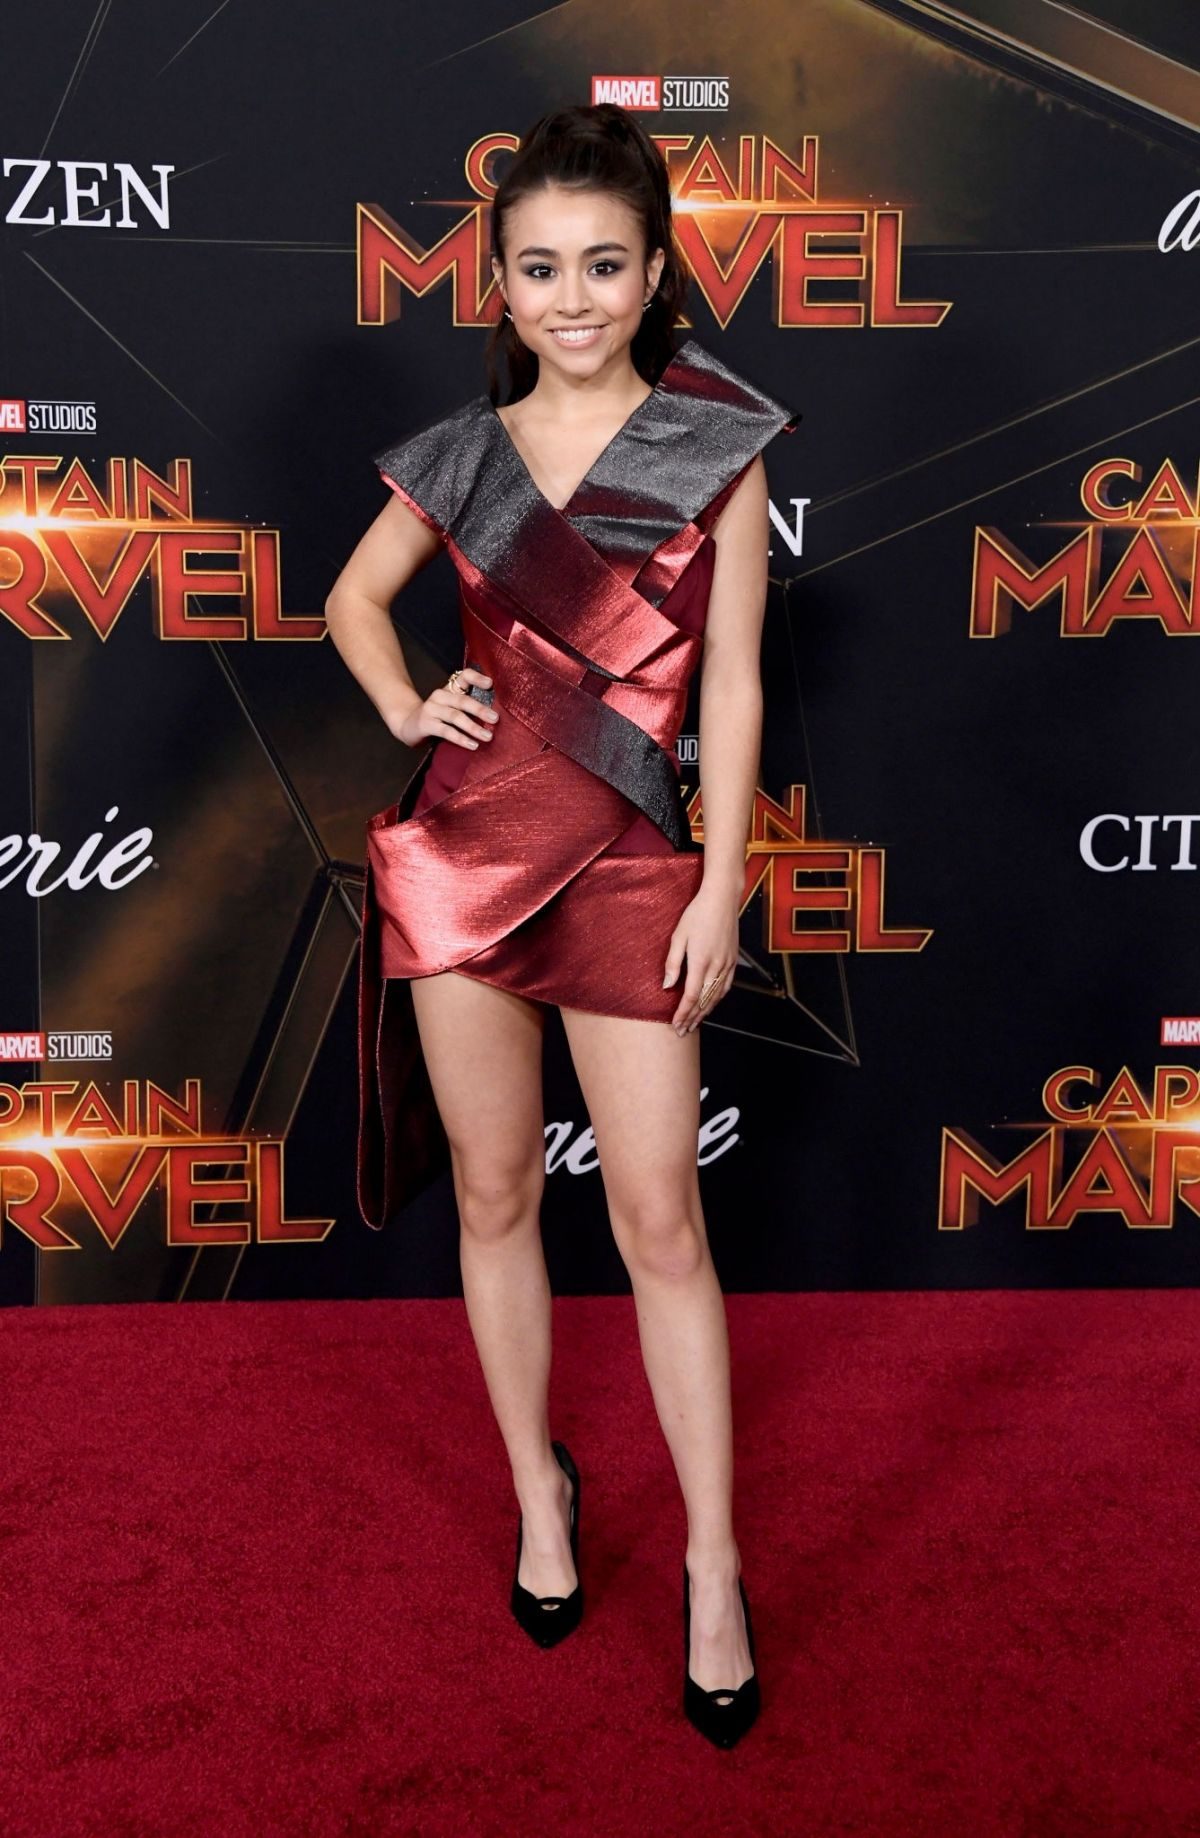 Ciara In Instyle Magazine April 2019 Issue: Ciara Riley Wilson At 'Captain Marvel' Premiere In